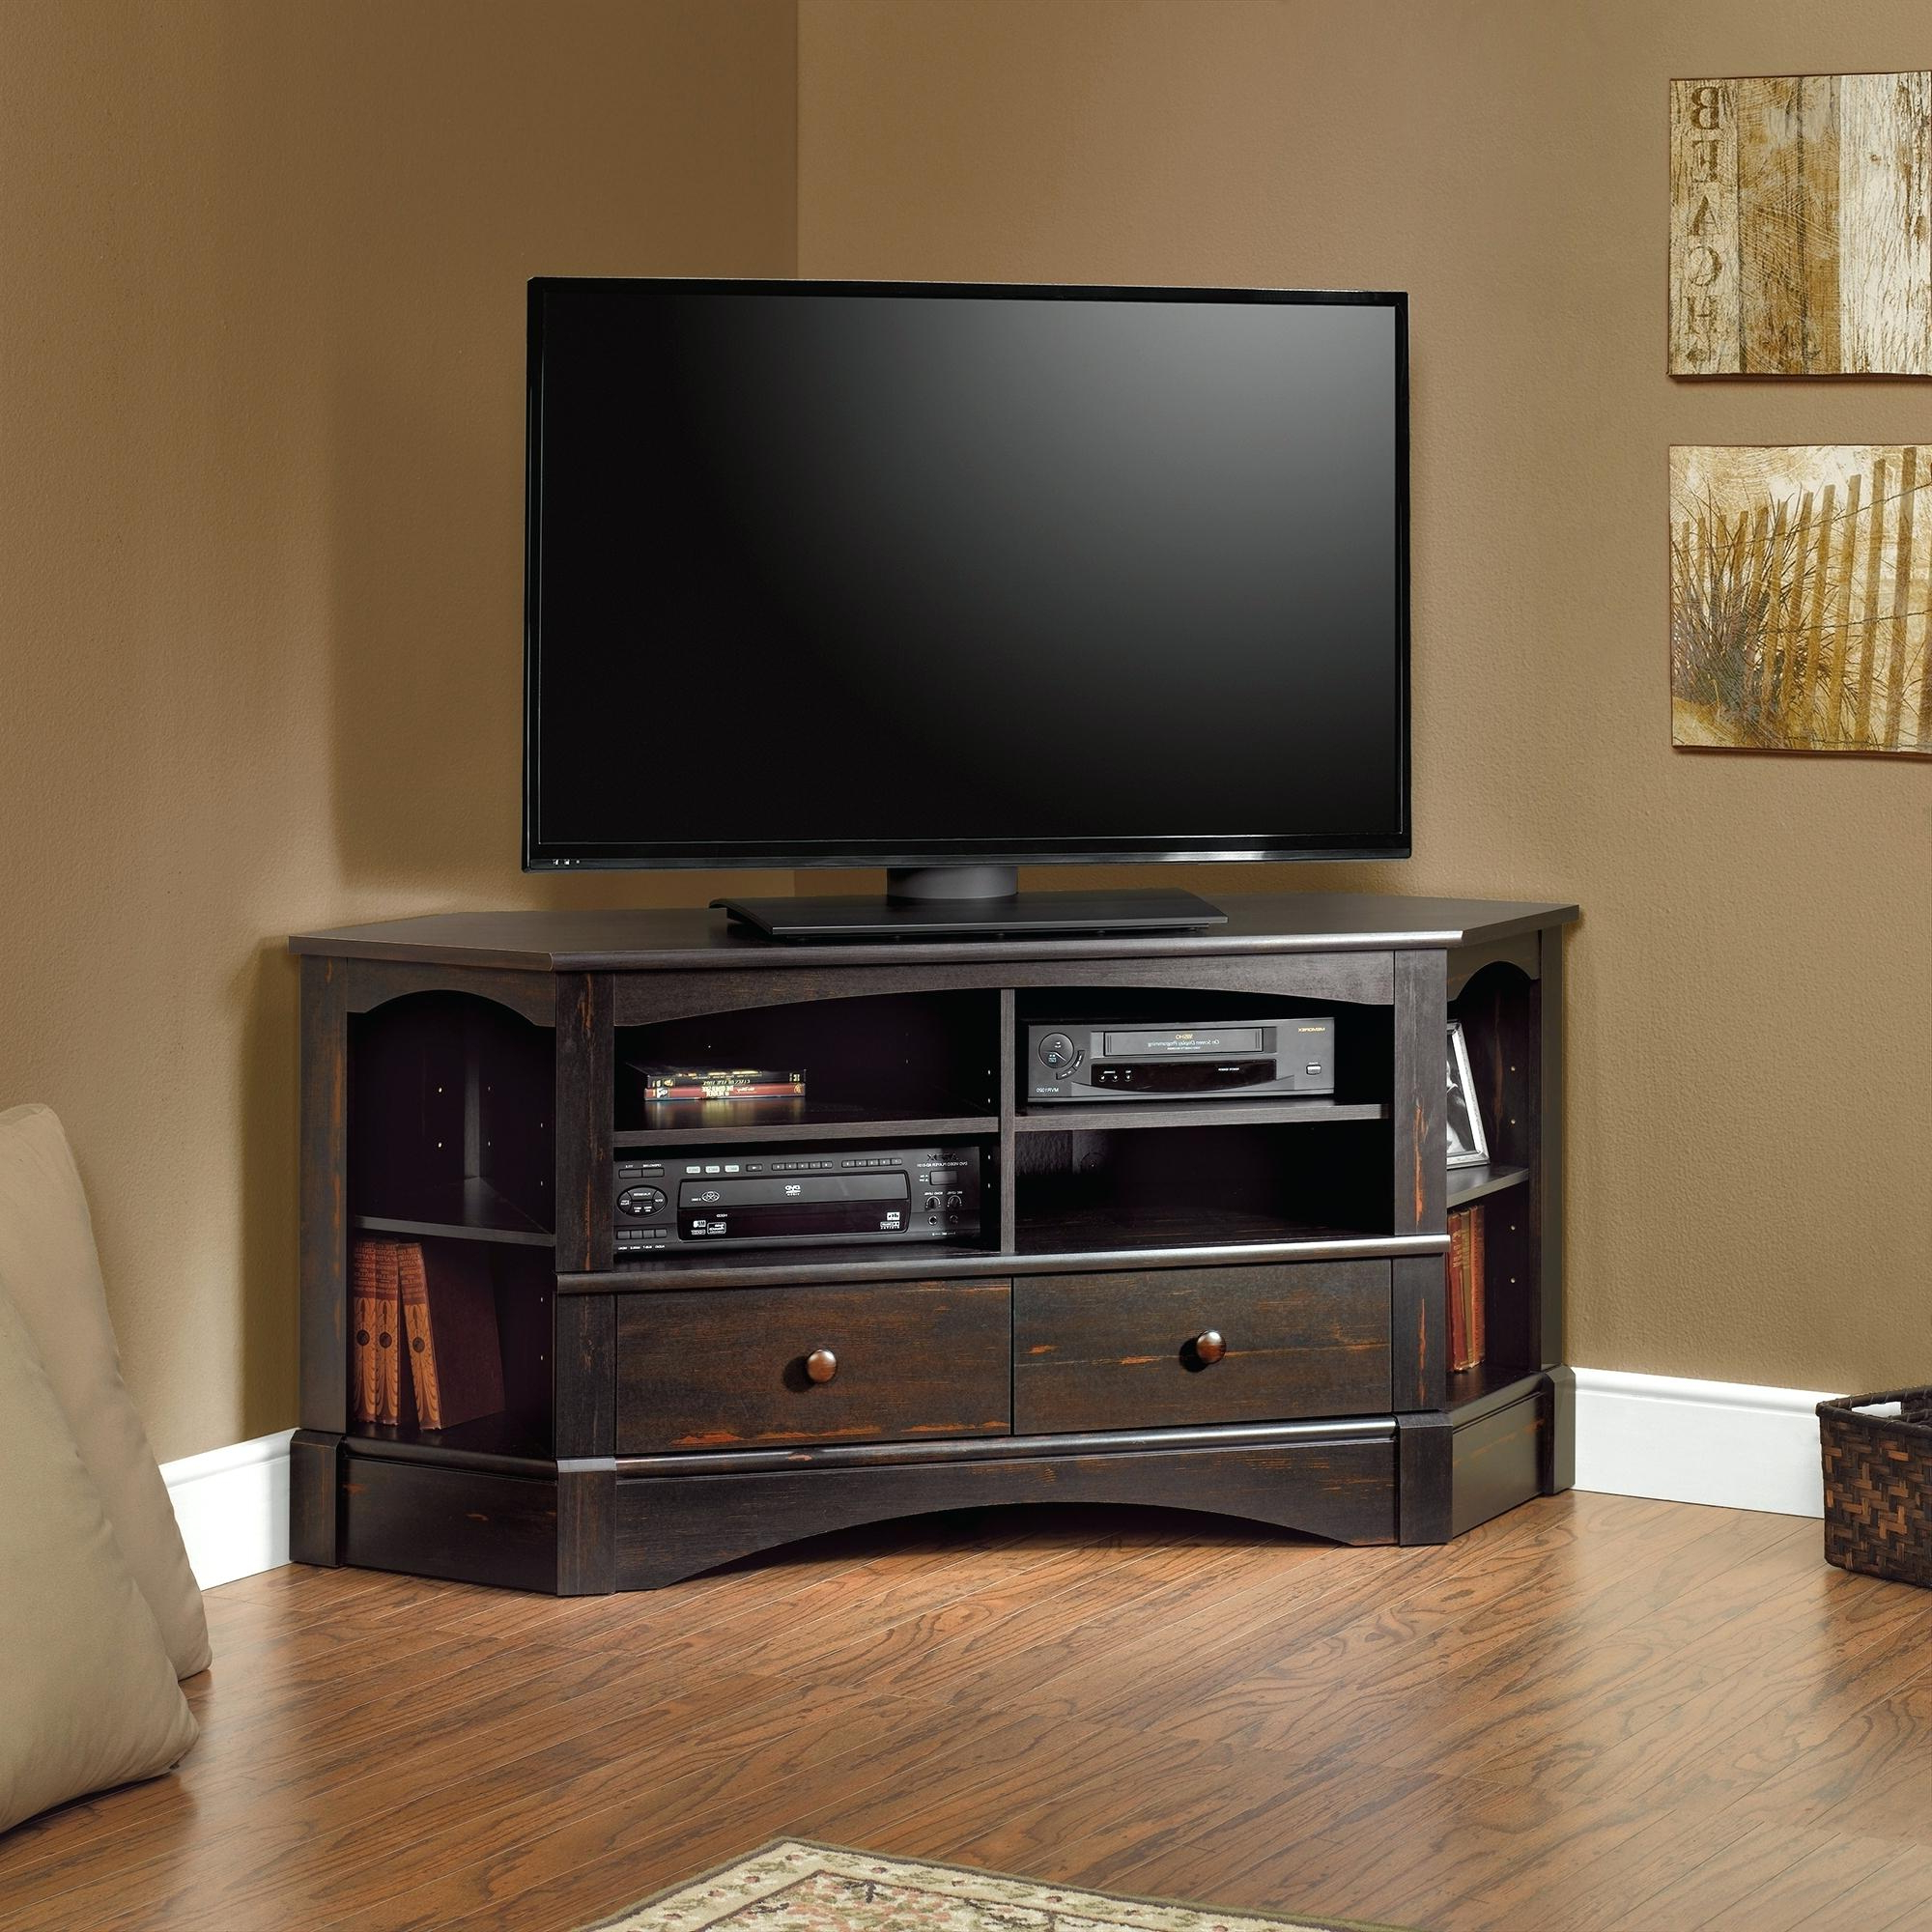 Preferred Corner Tv Stand For 50 Inch Tvs Up To Fit South Shore City Life Regarding 50 Inch Corner Tv Cabinets (View 18 of 20)